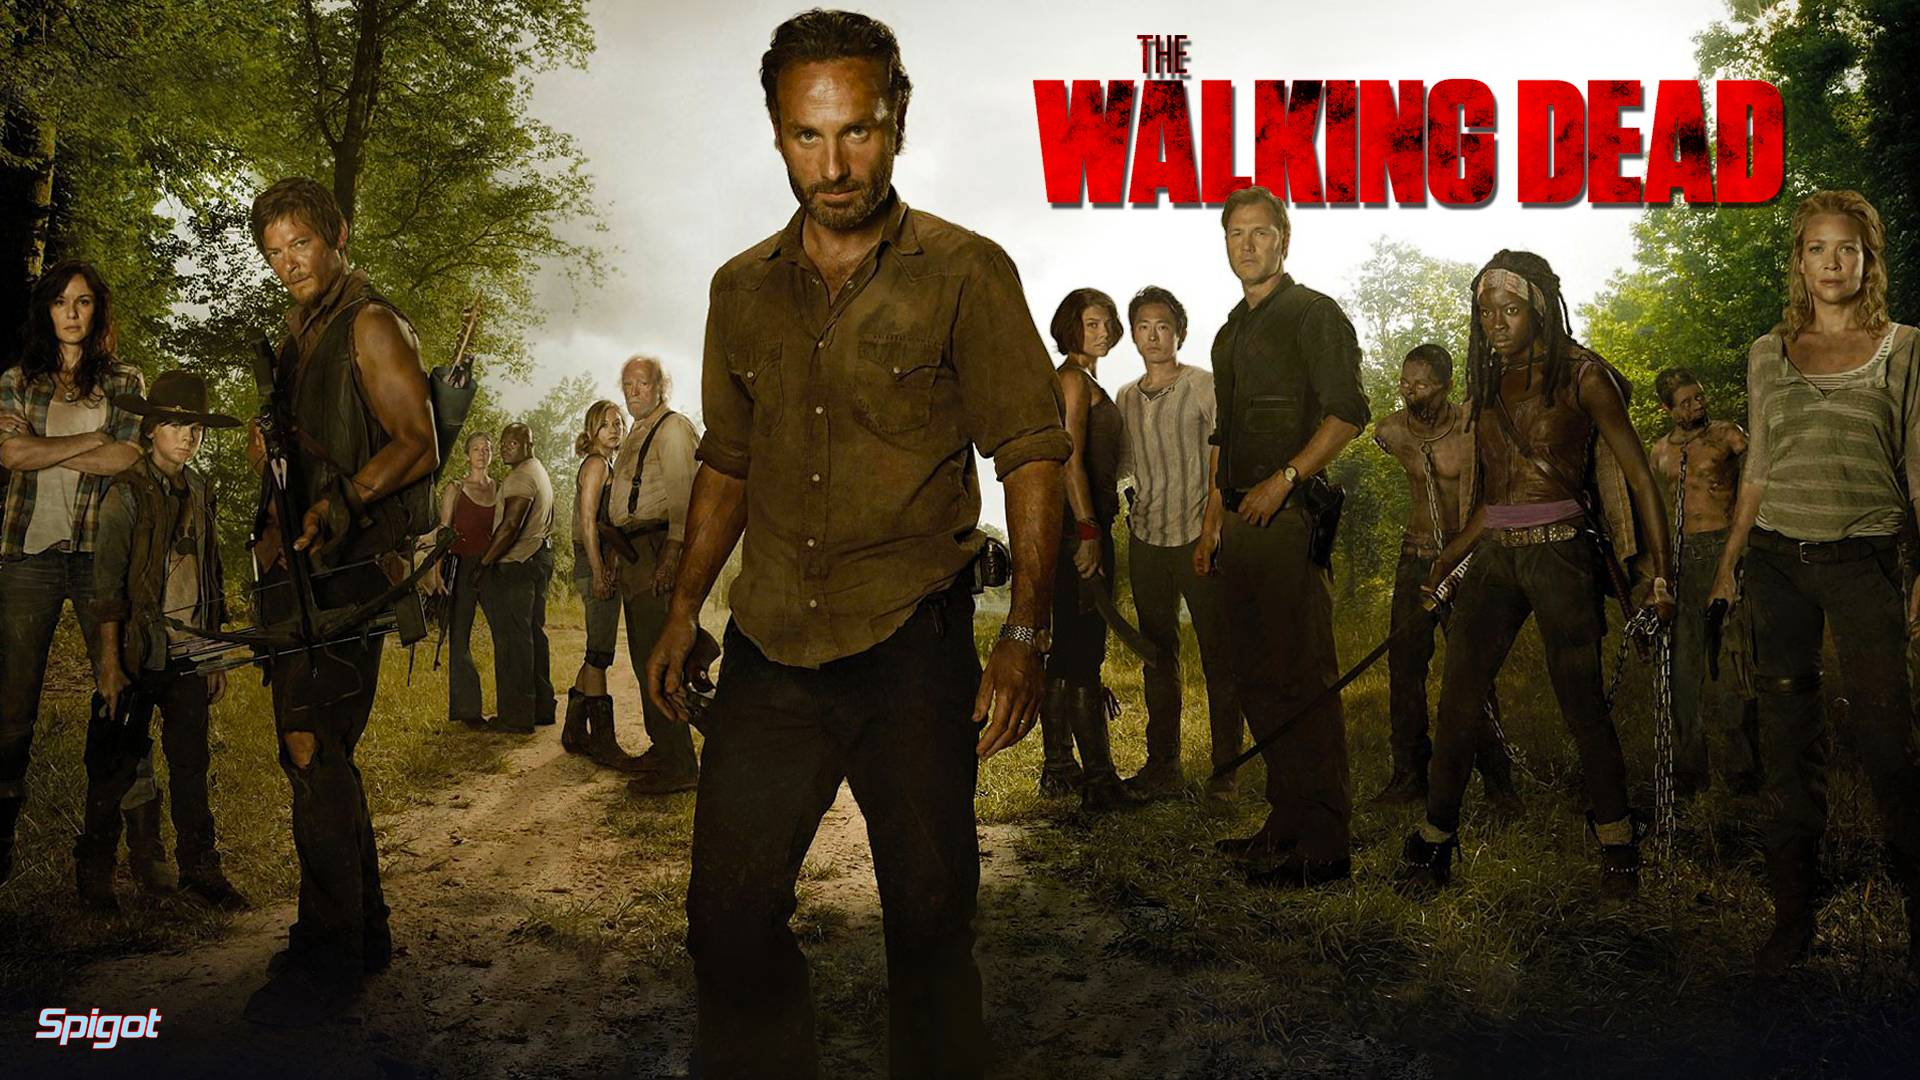 walking dead wallpapers - wallpaper cave